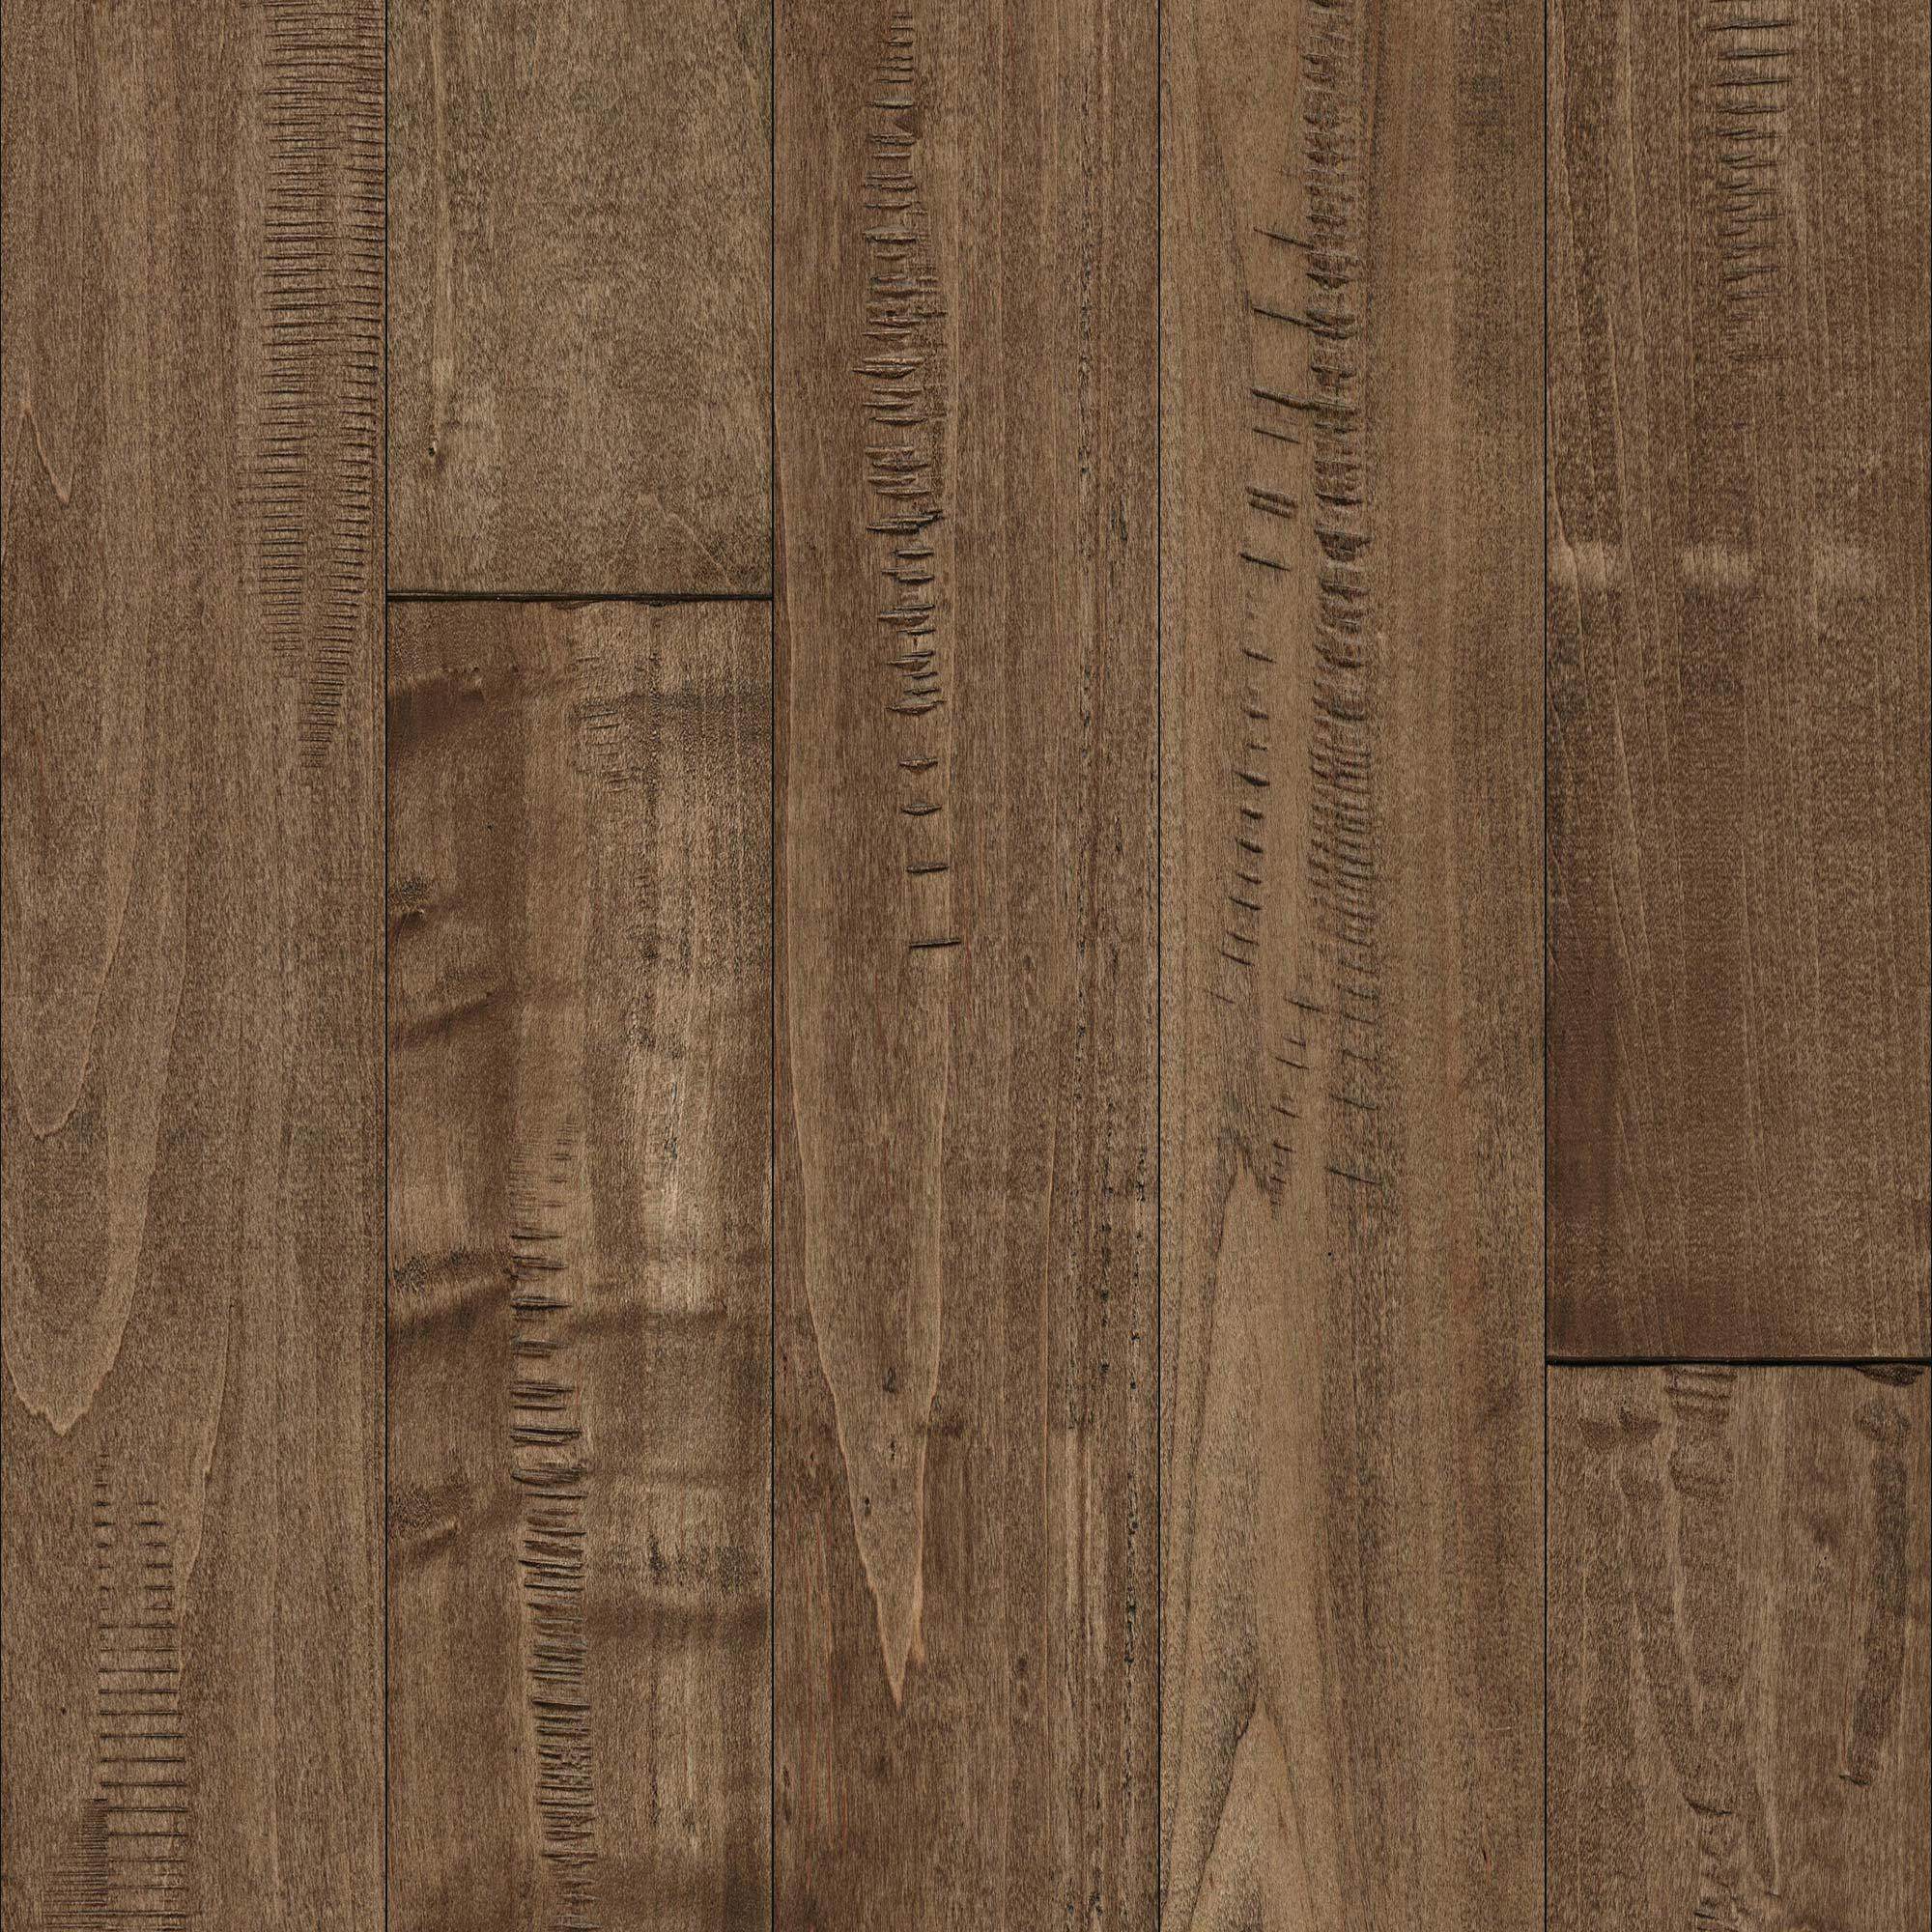 maple cinnamon hardwood flooring reviews of kingsmill pacific maple handscraped 4 wide 3 4 solid hardwood flooring with regard to pacific m upac4 4 x 60 approved